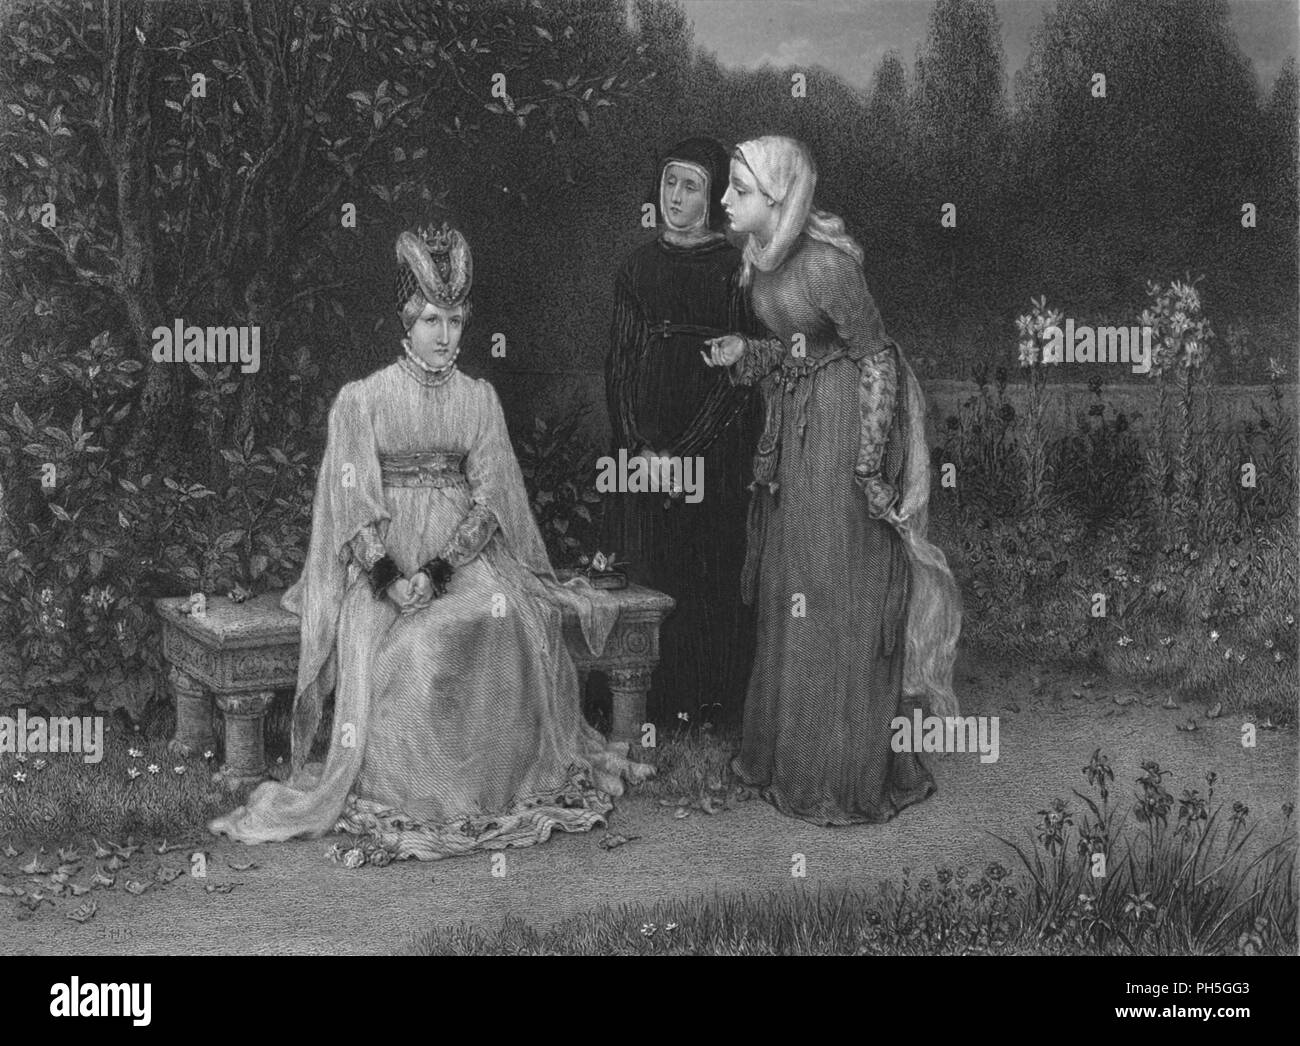 'Queen Isabella and Her Ladies (King Richard II)', c1870. From The Works of Shakspere, by Charles Knight. [Virtue & Co., Limited, London, c1870] - Stock Image